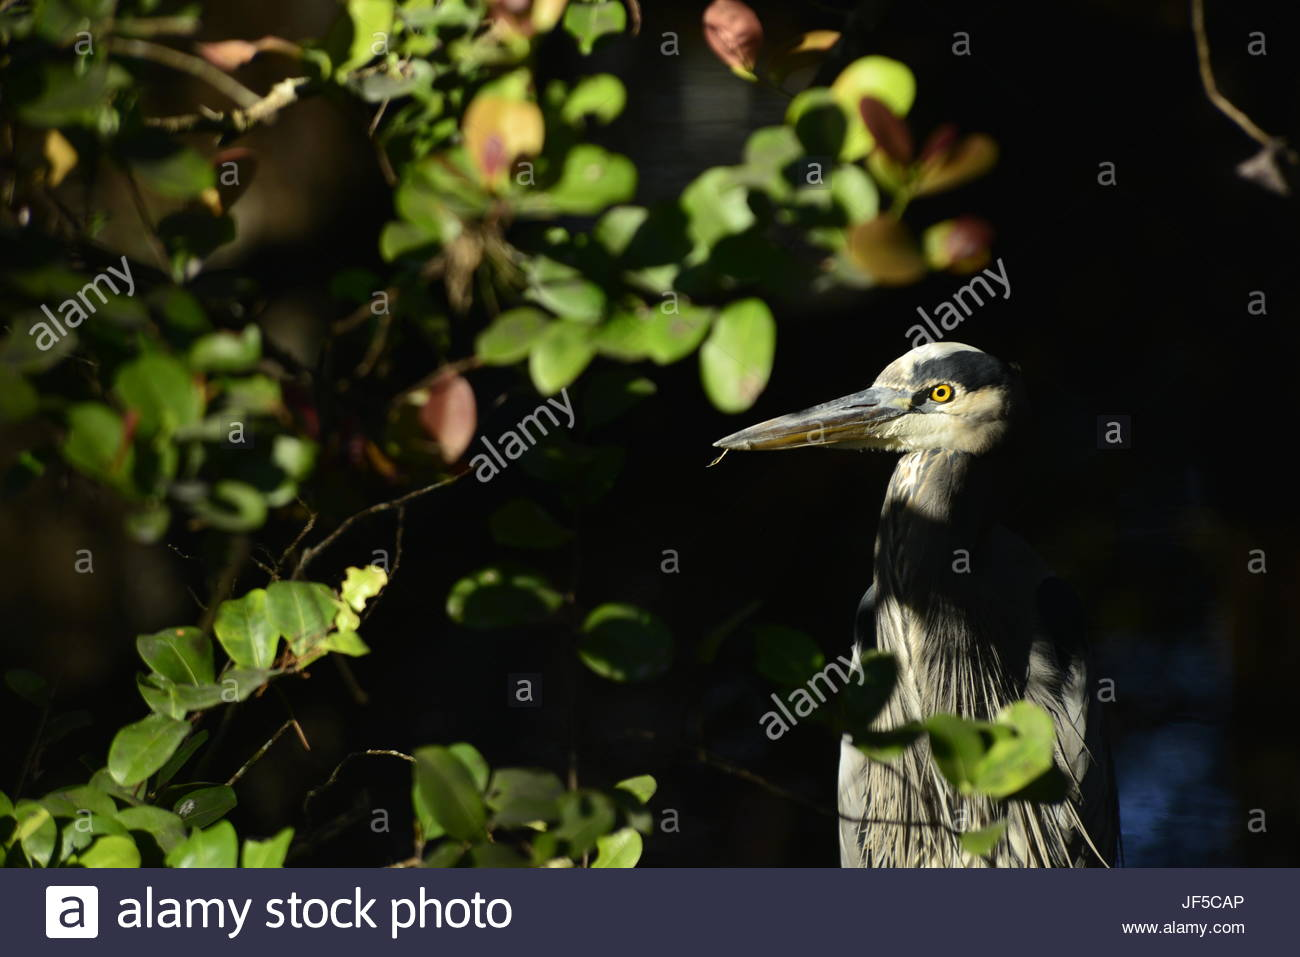 Portrait of a great blue heron in dappled sunlight. - Stock Image